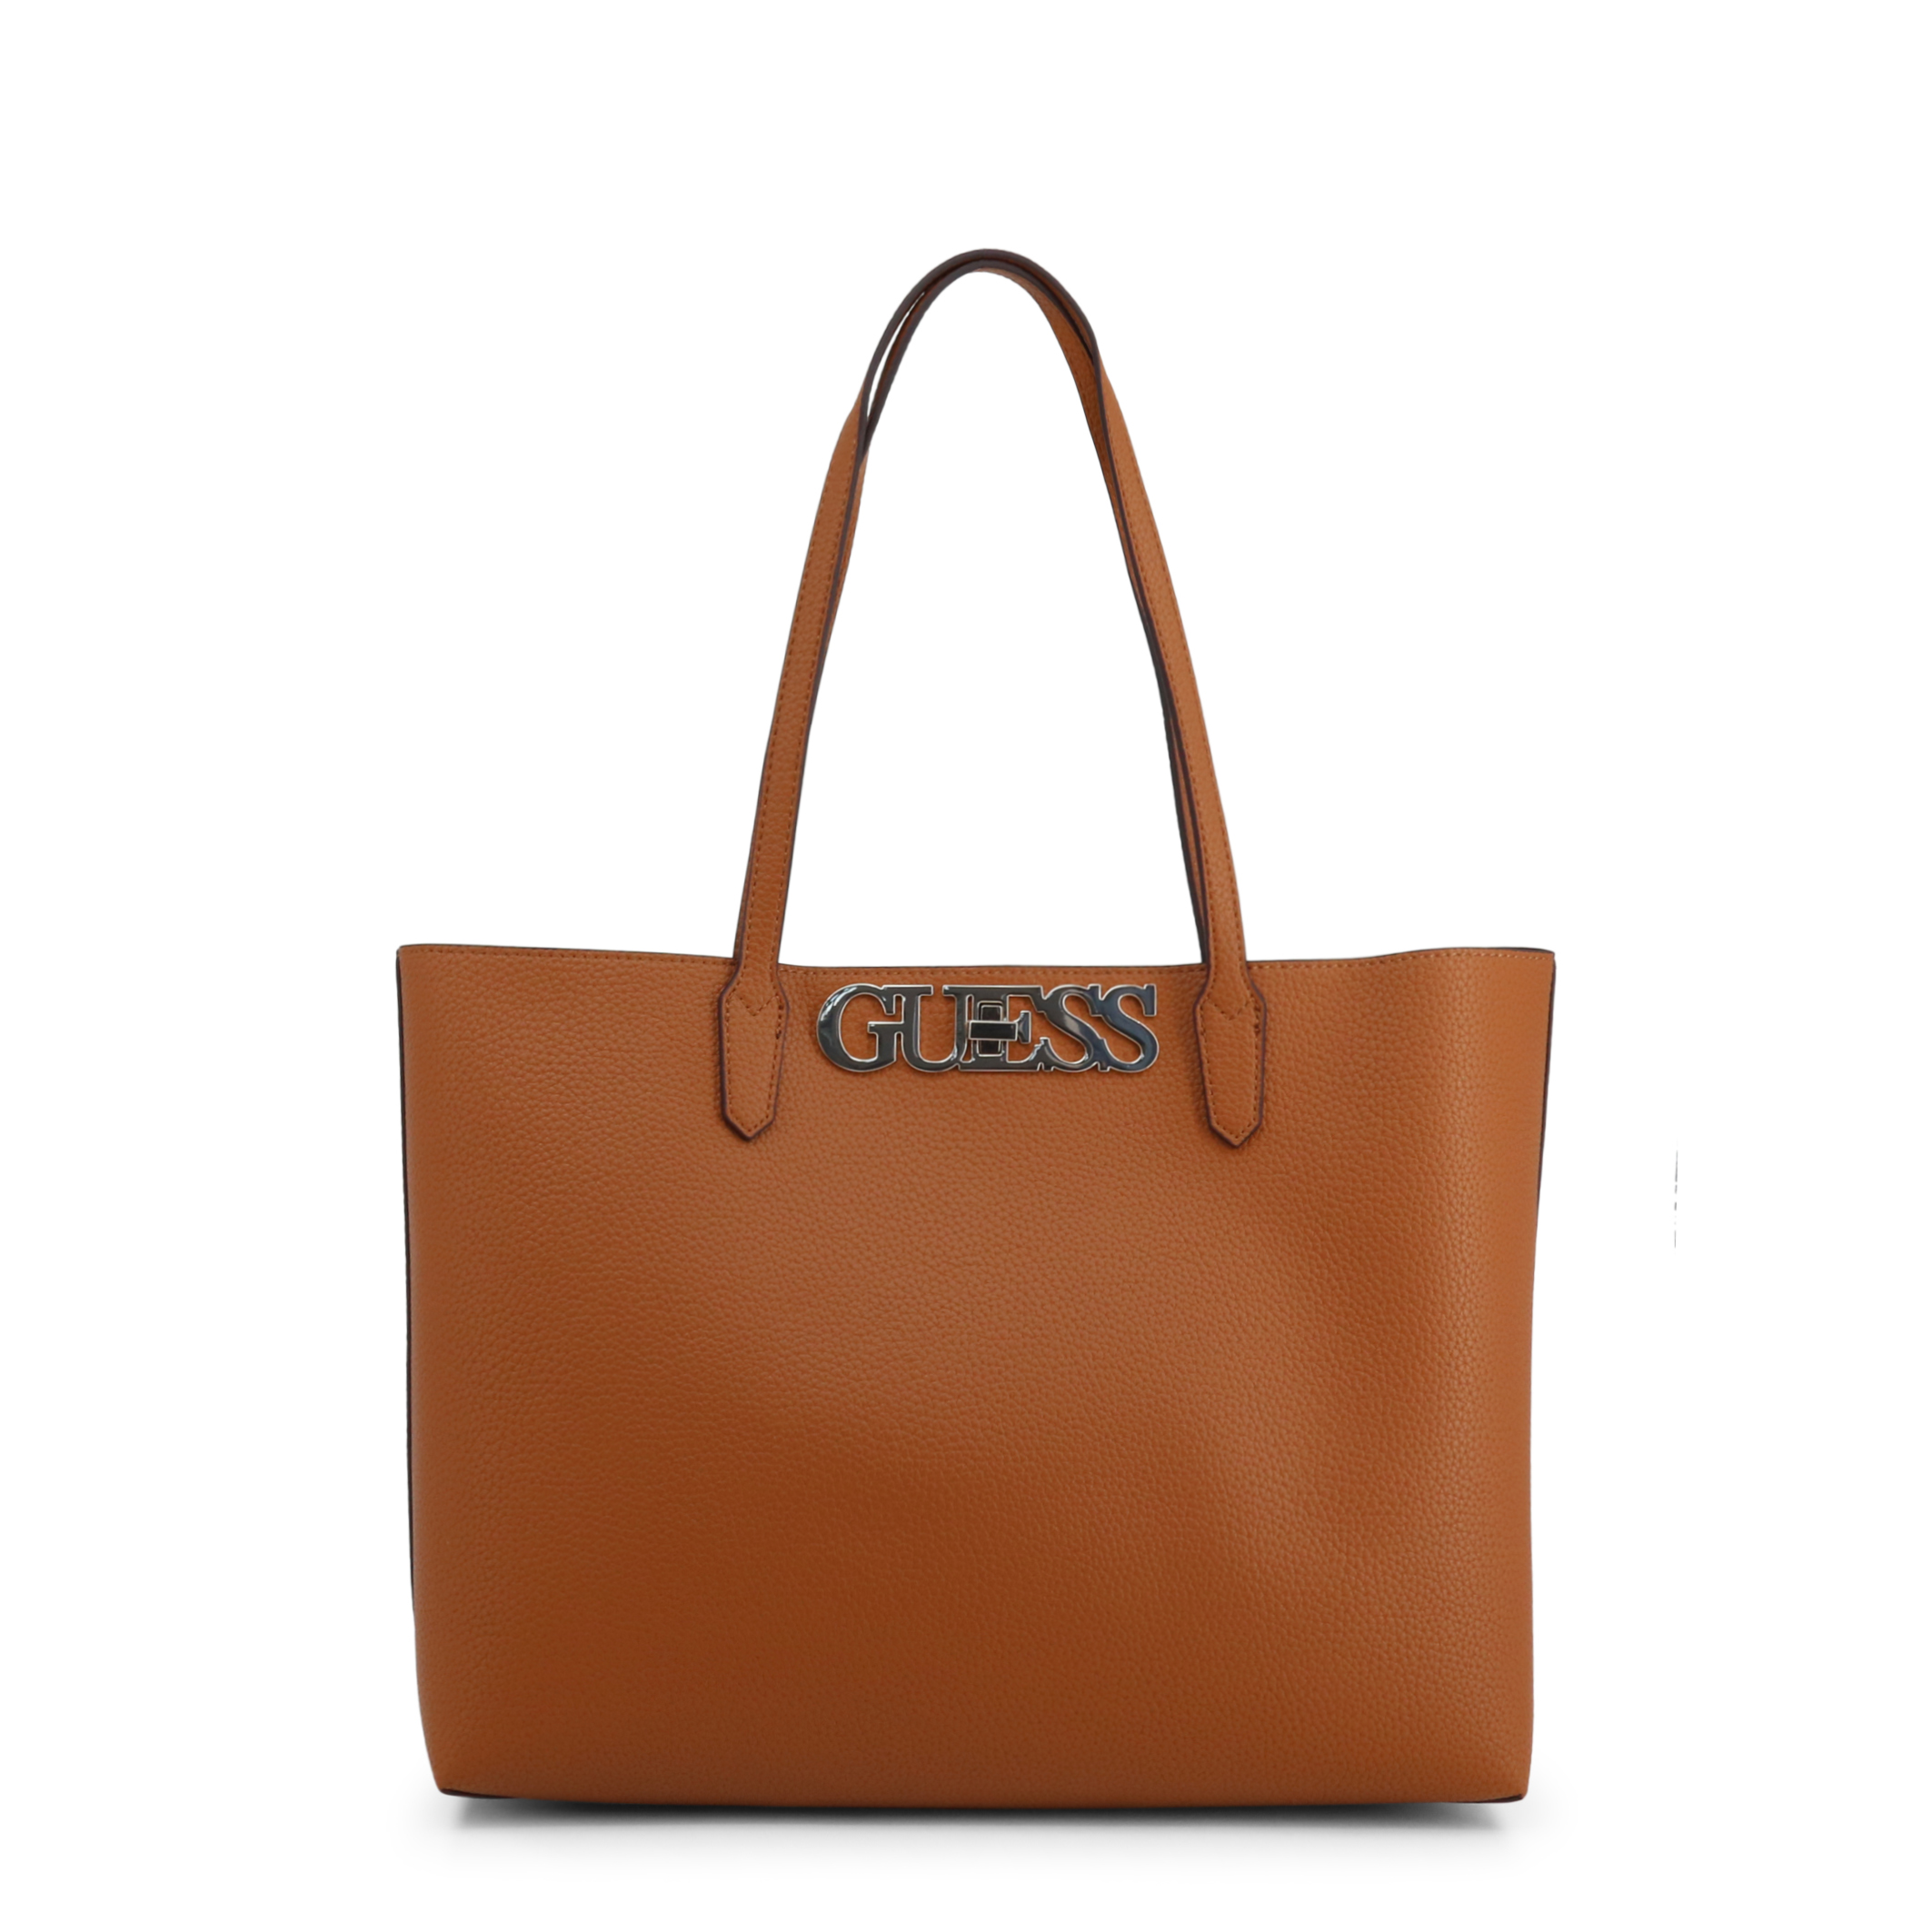 Shopping bag de Mujer Guess Marron Poliuretano